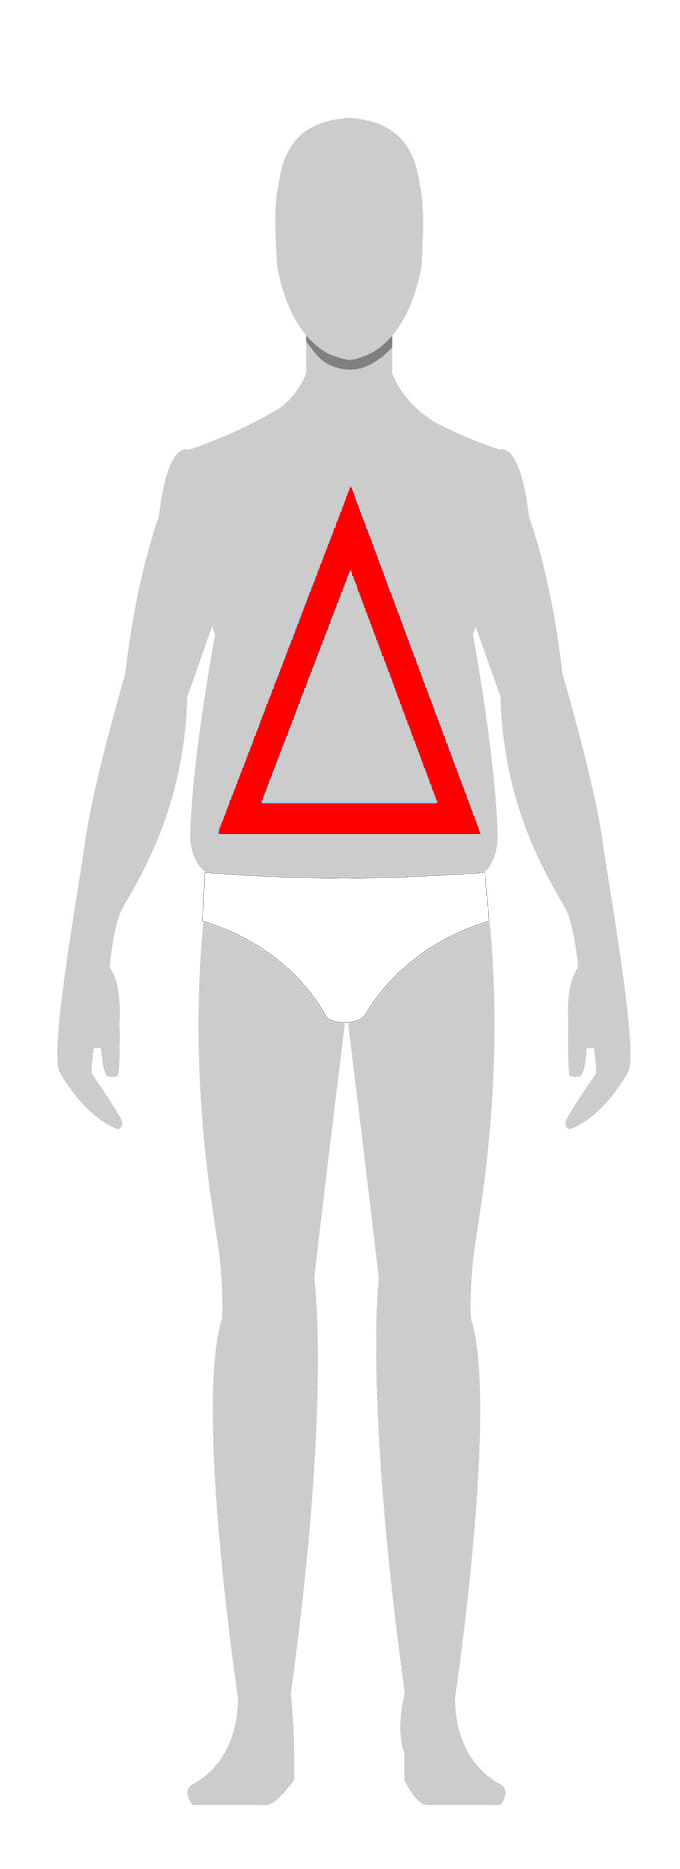 Triangle - • Large Midsection• Narrow Shoulders• Slimmer leg than upper body• Light to no muscle definition